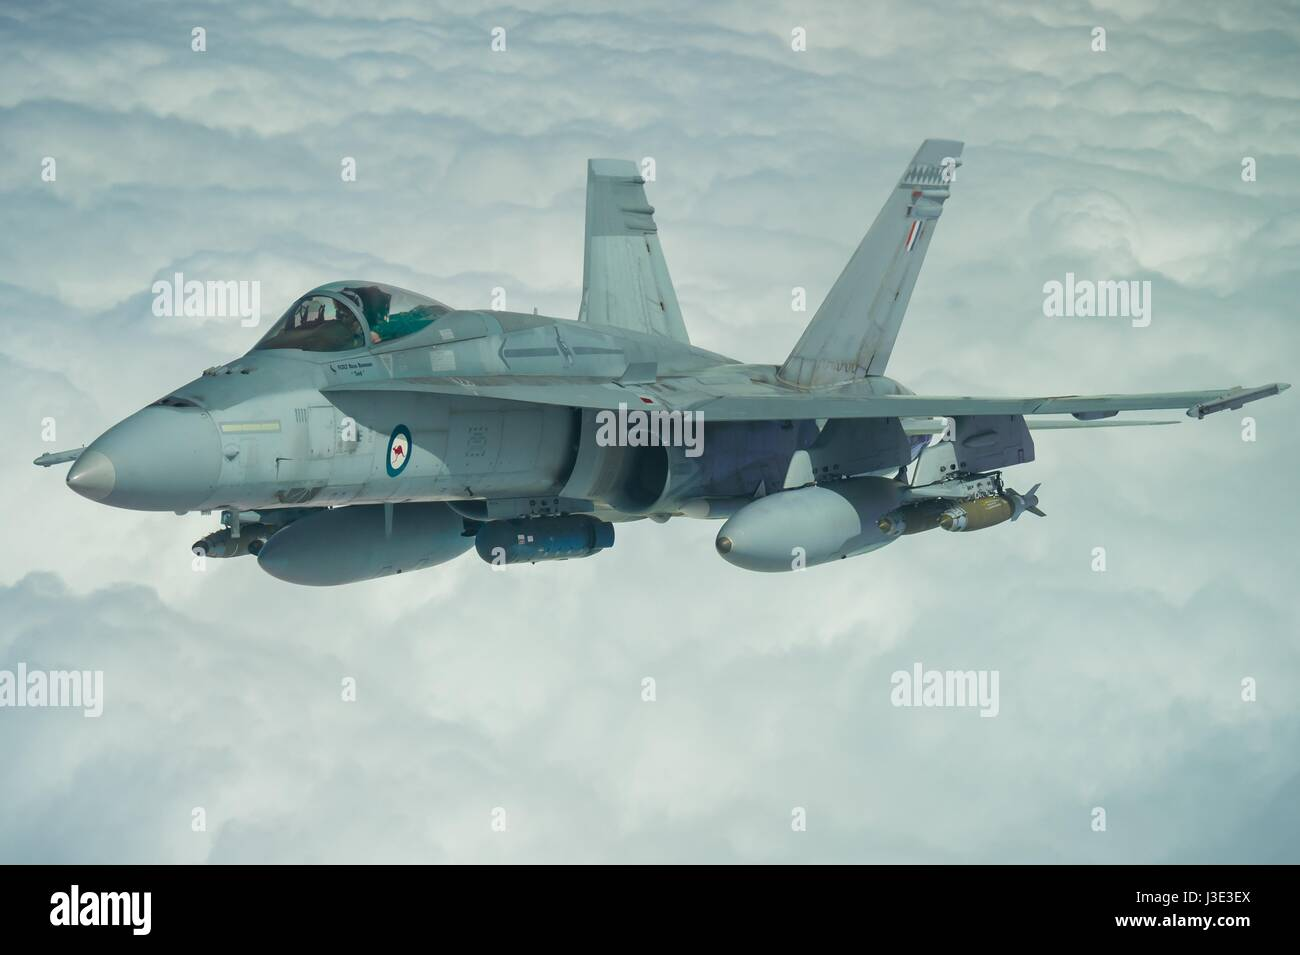 A Royal Australian Air Force F-18A Hornet fighter combat jet aircraft in fight during an Operation Okra mission Stock Photo